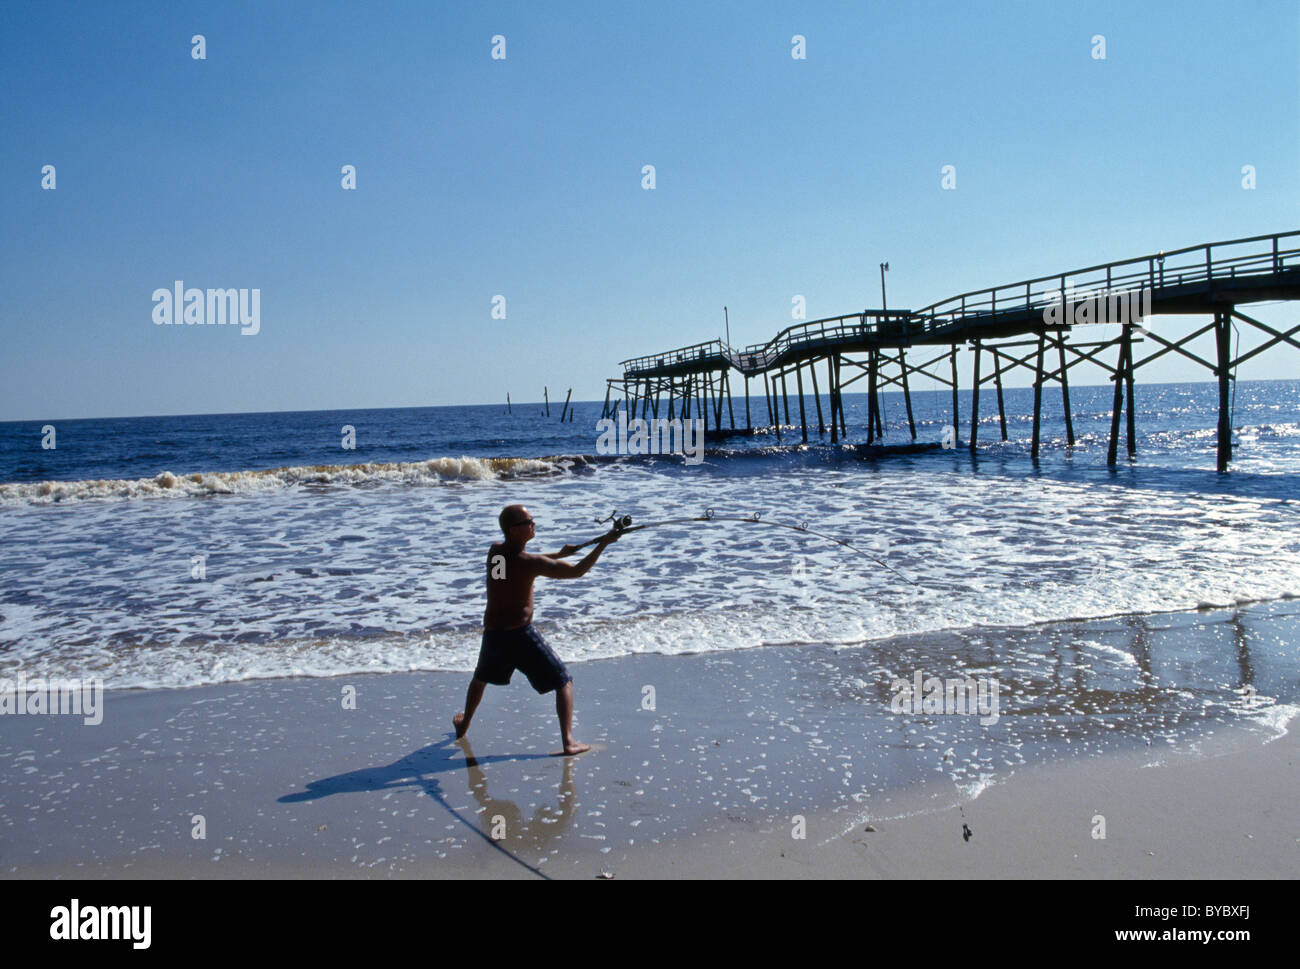 A man surf casts following Hurricane Floyd near a partially destroyed wooden jetty on Oak Island, North Carolina. - Stock Image